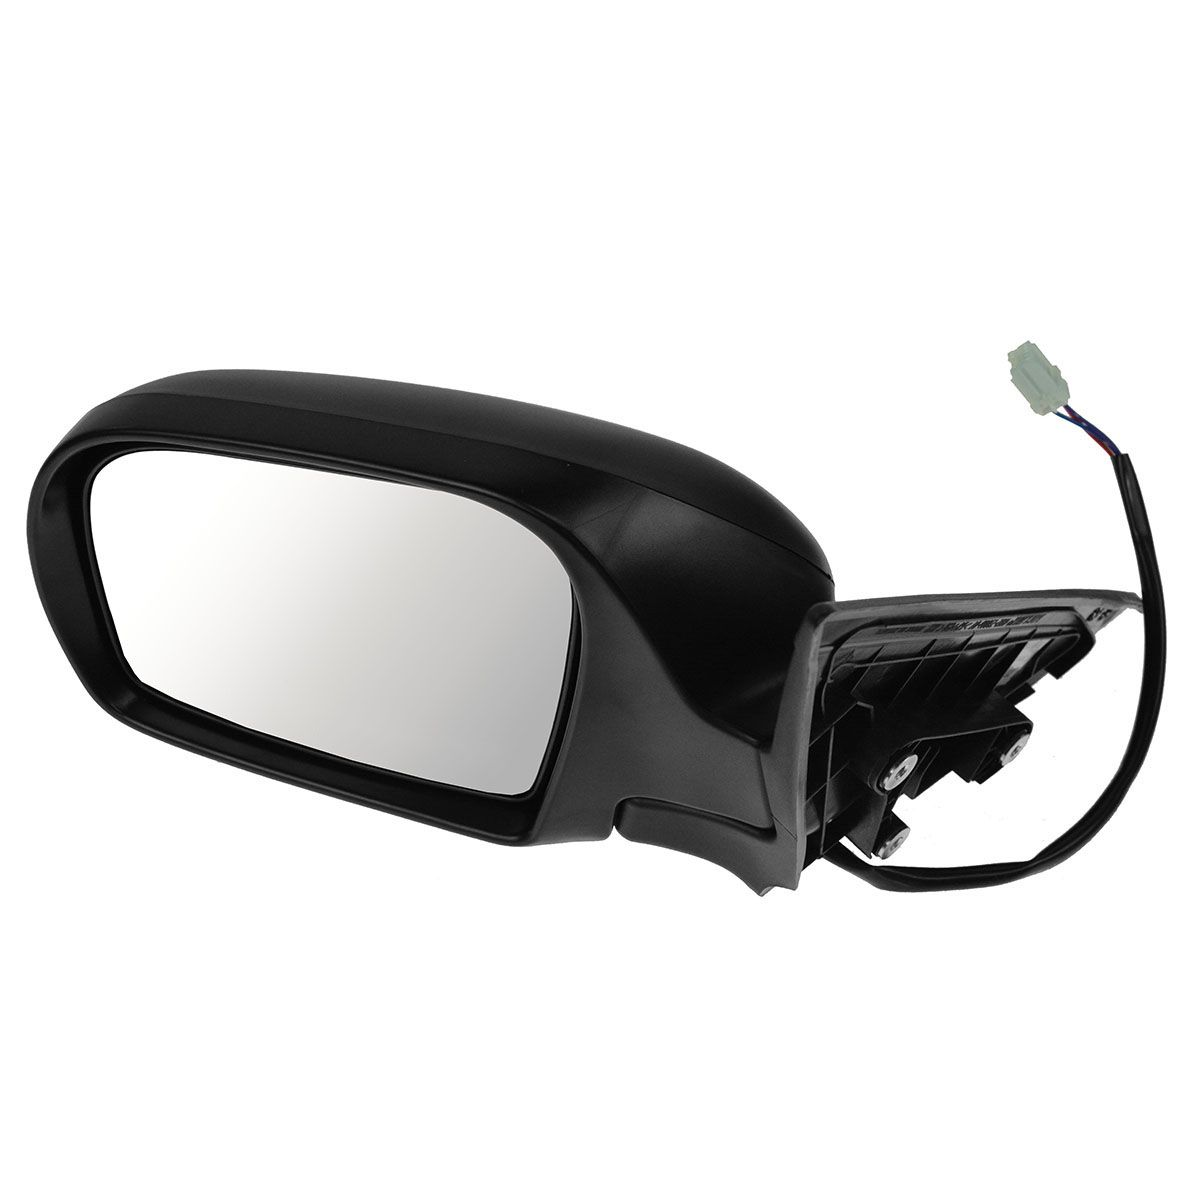 Mirror Power Textured RH Right Passenger Side for 02-07 Subaru Impreza Outback